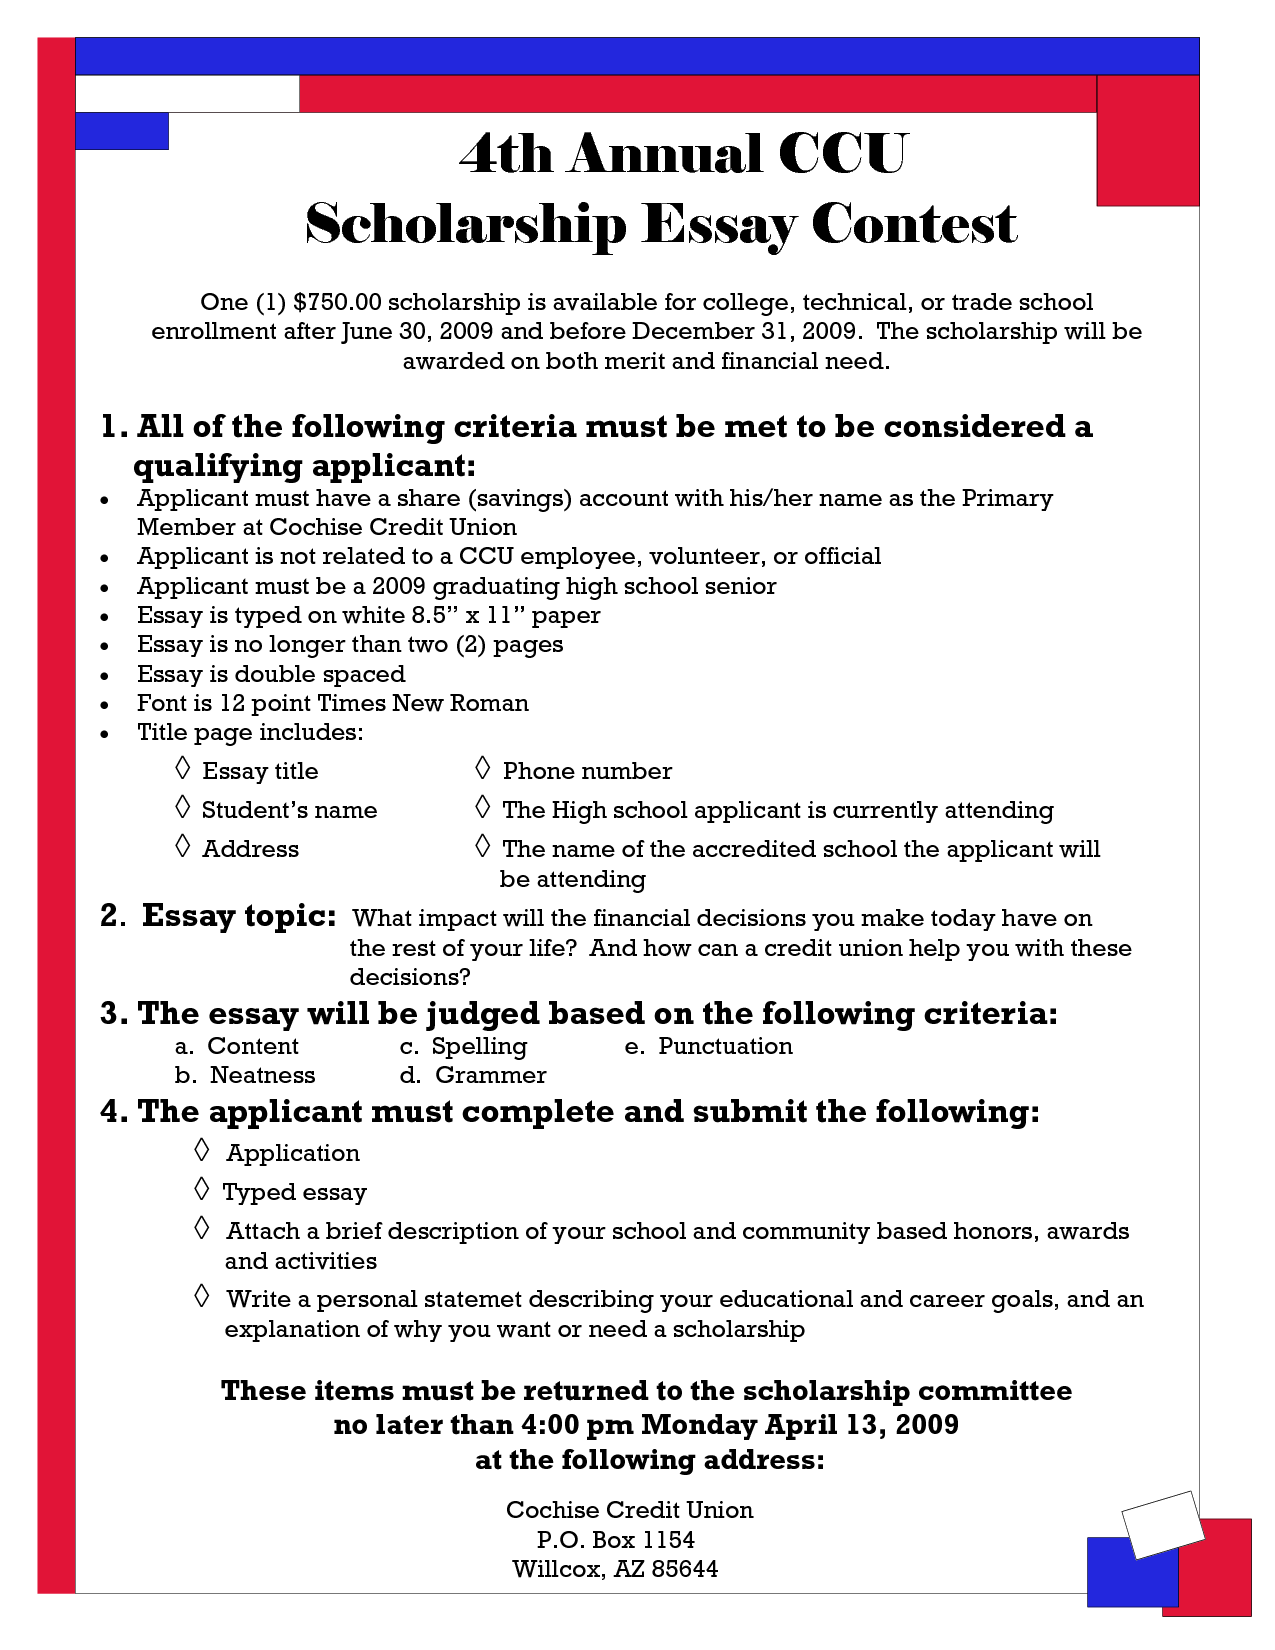 Essay contest summer 2011